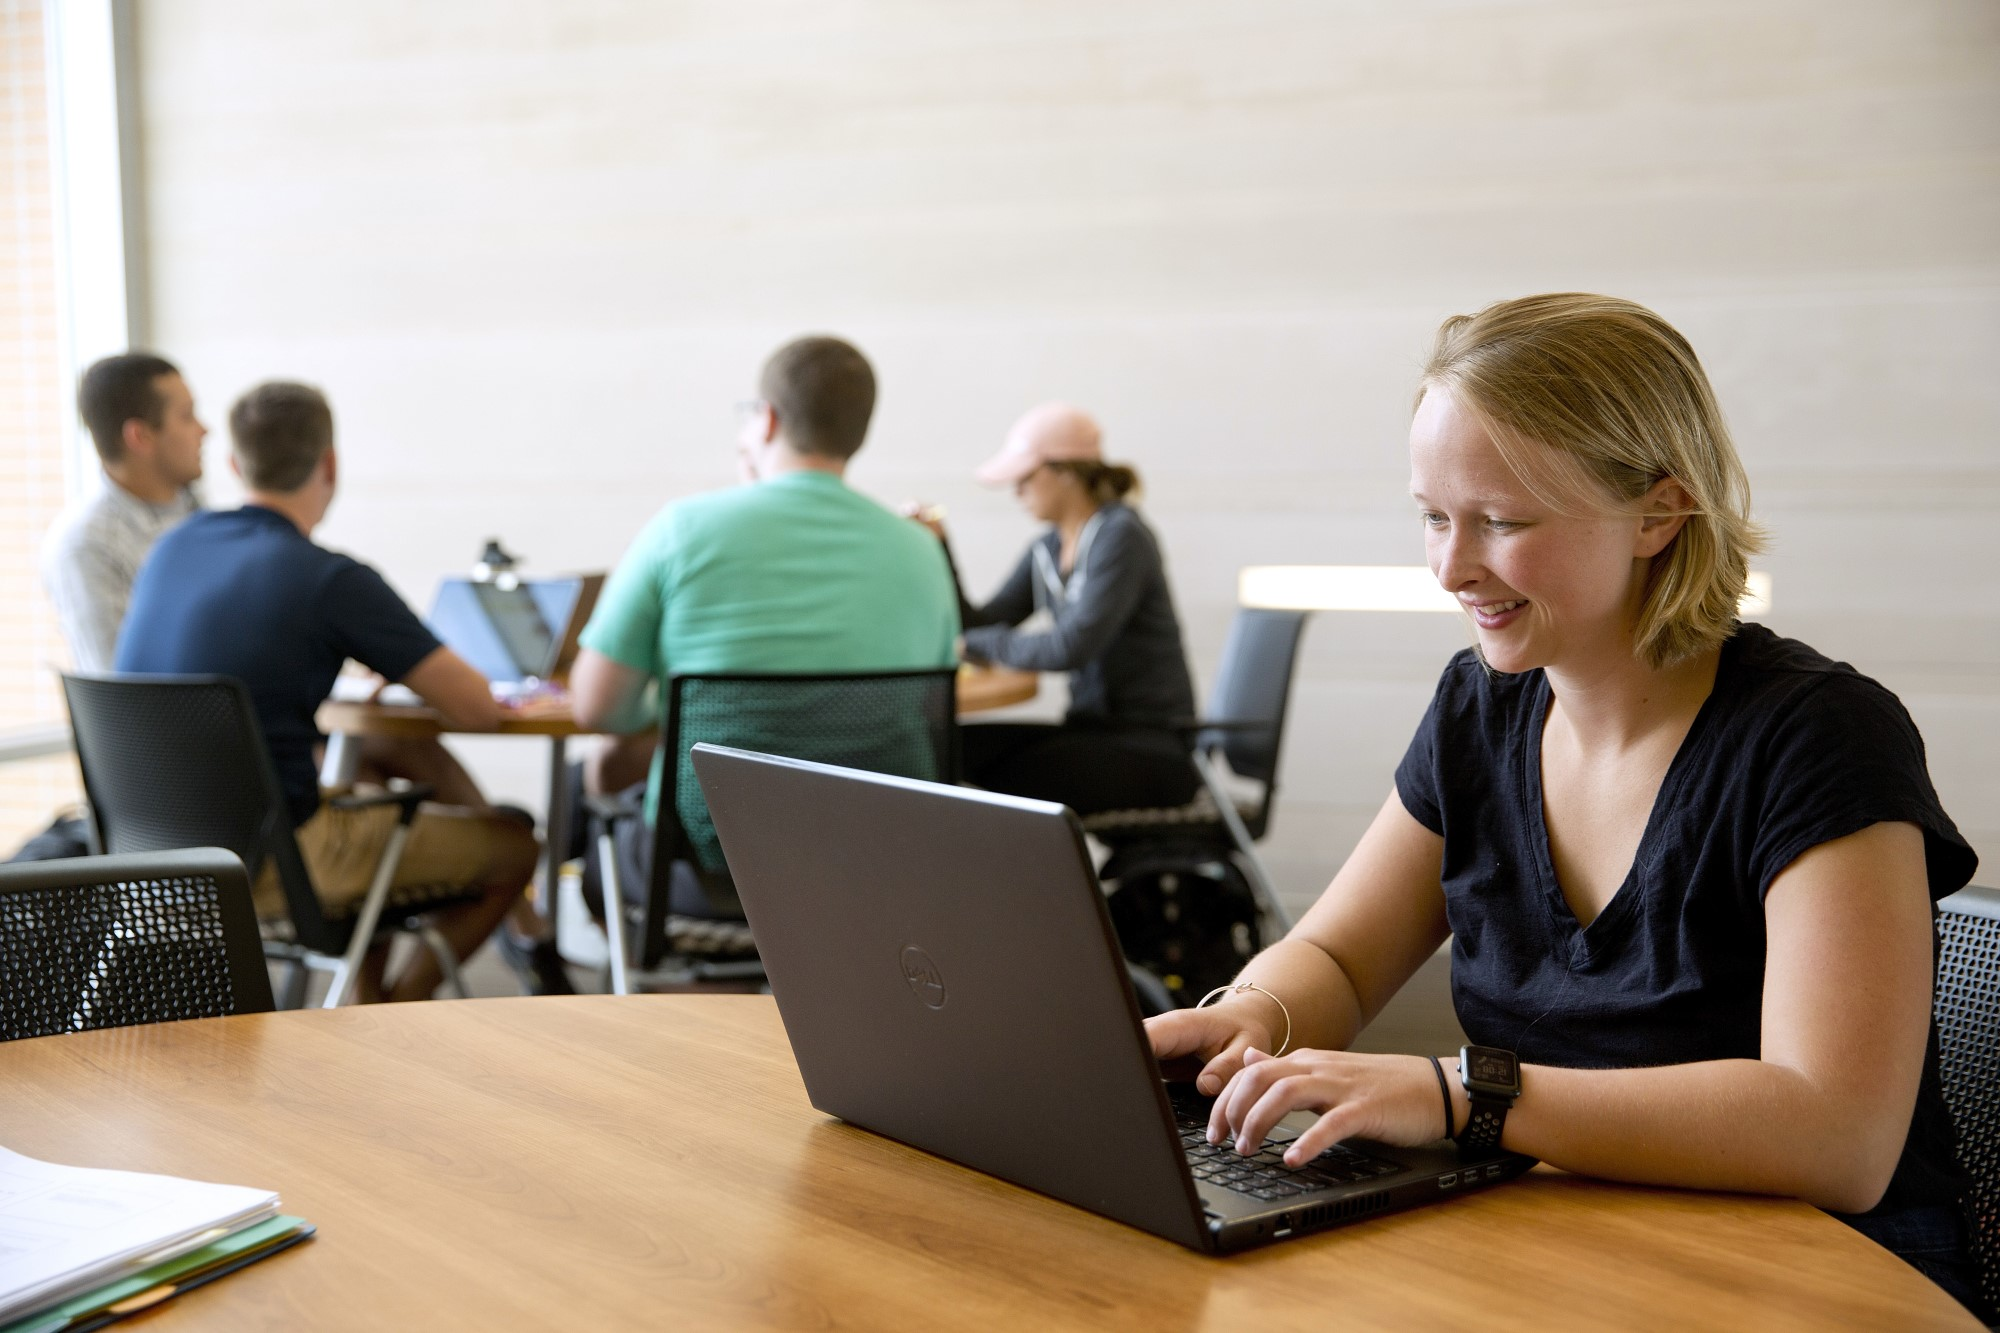 Clarke University Accounting Degree students studying online for their classes